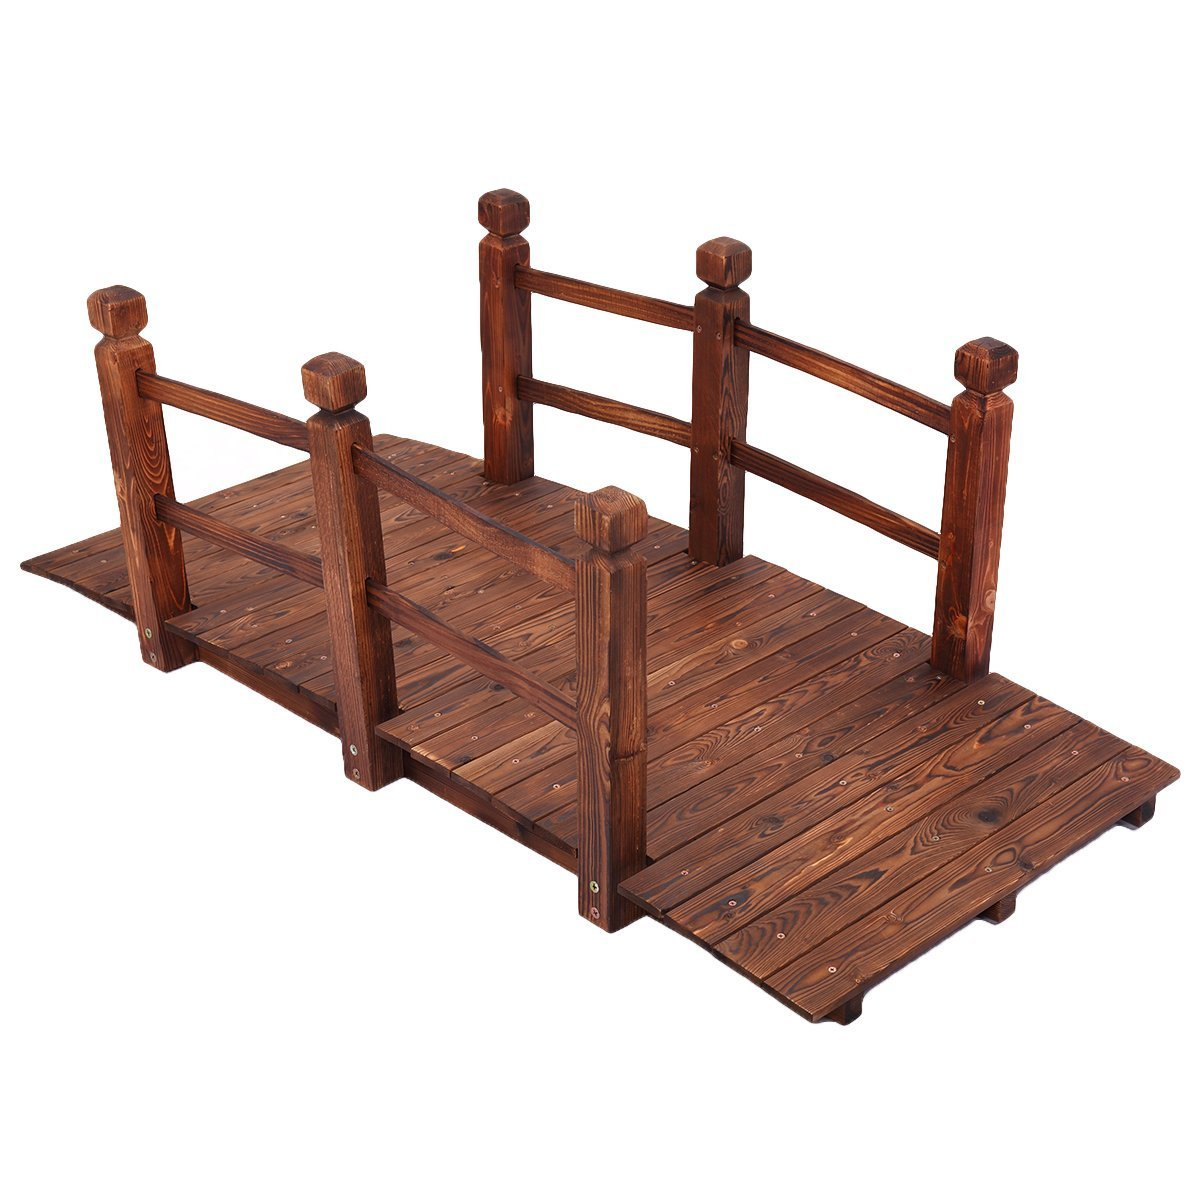 JAXPETY 5'' Wooden Bridge Stained Finish Decorative Solid Wood Garden Pond Arch Walkway w/Railings by JAXPETY (Image #5)